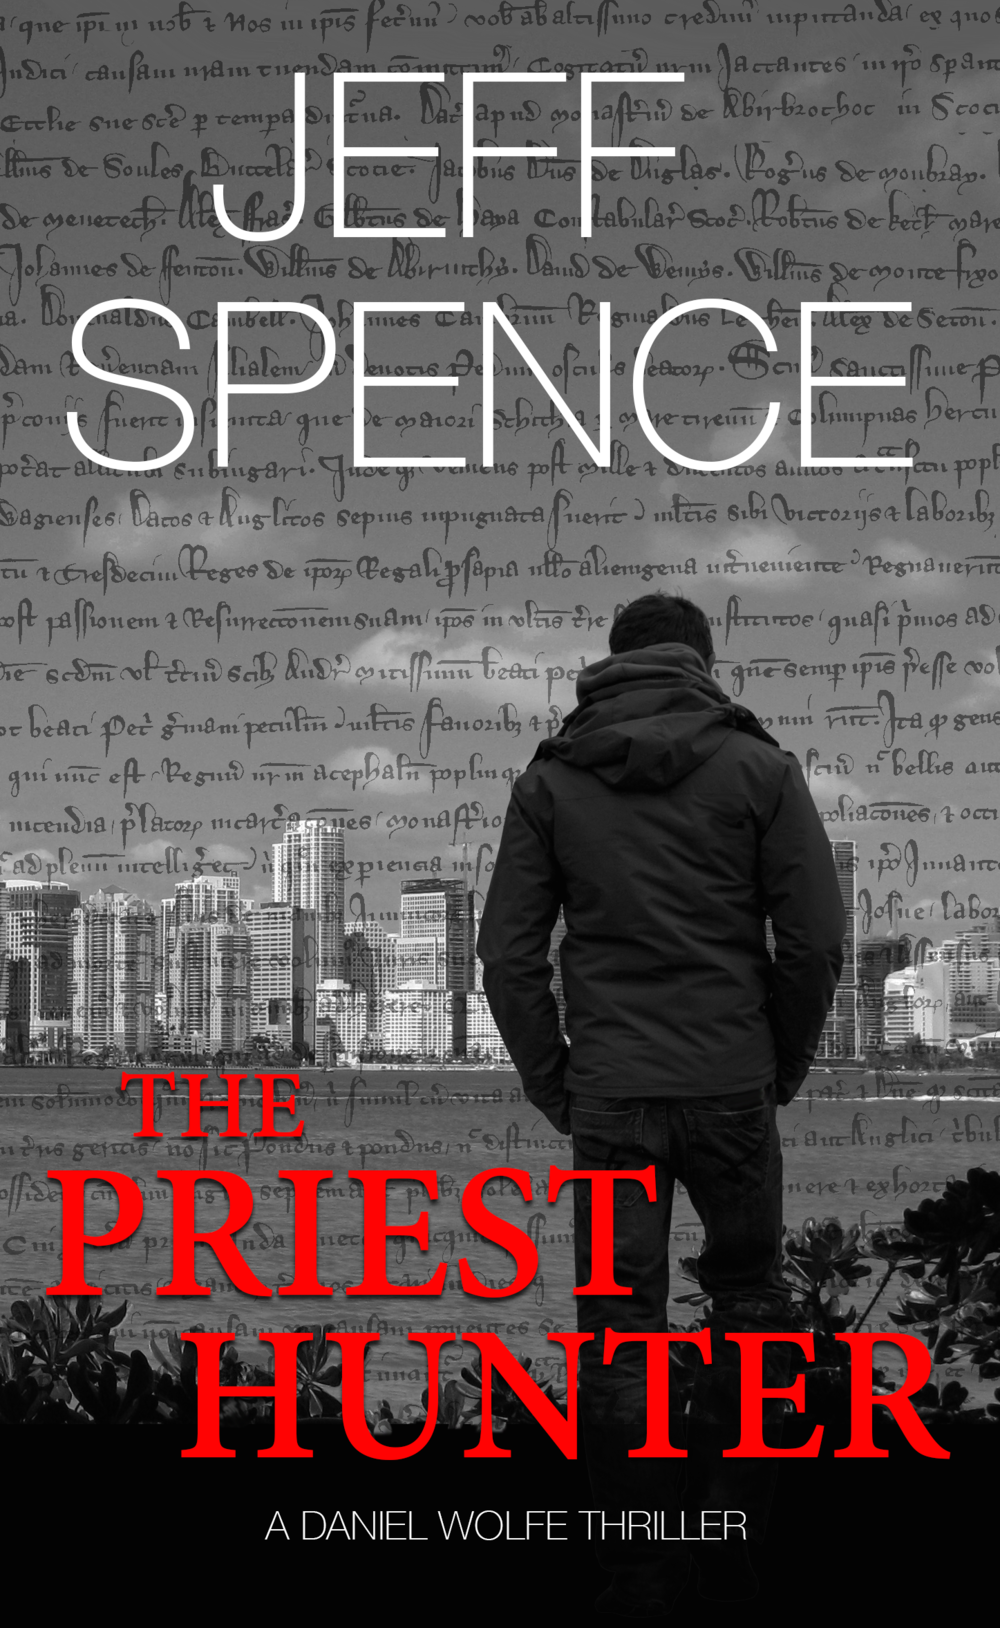 Daniel Wolfe, Vatican Investigator of sexual abuse by the clergy, is confronted with the body of his murdered brother. His already ragged edges are pressed to the limit as he seeks the answers to his brother's death, and steps into the first chapter of a dark conspiracy.